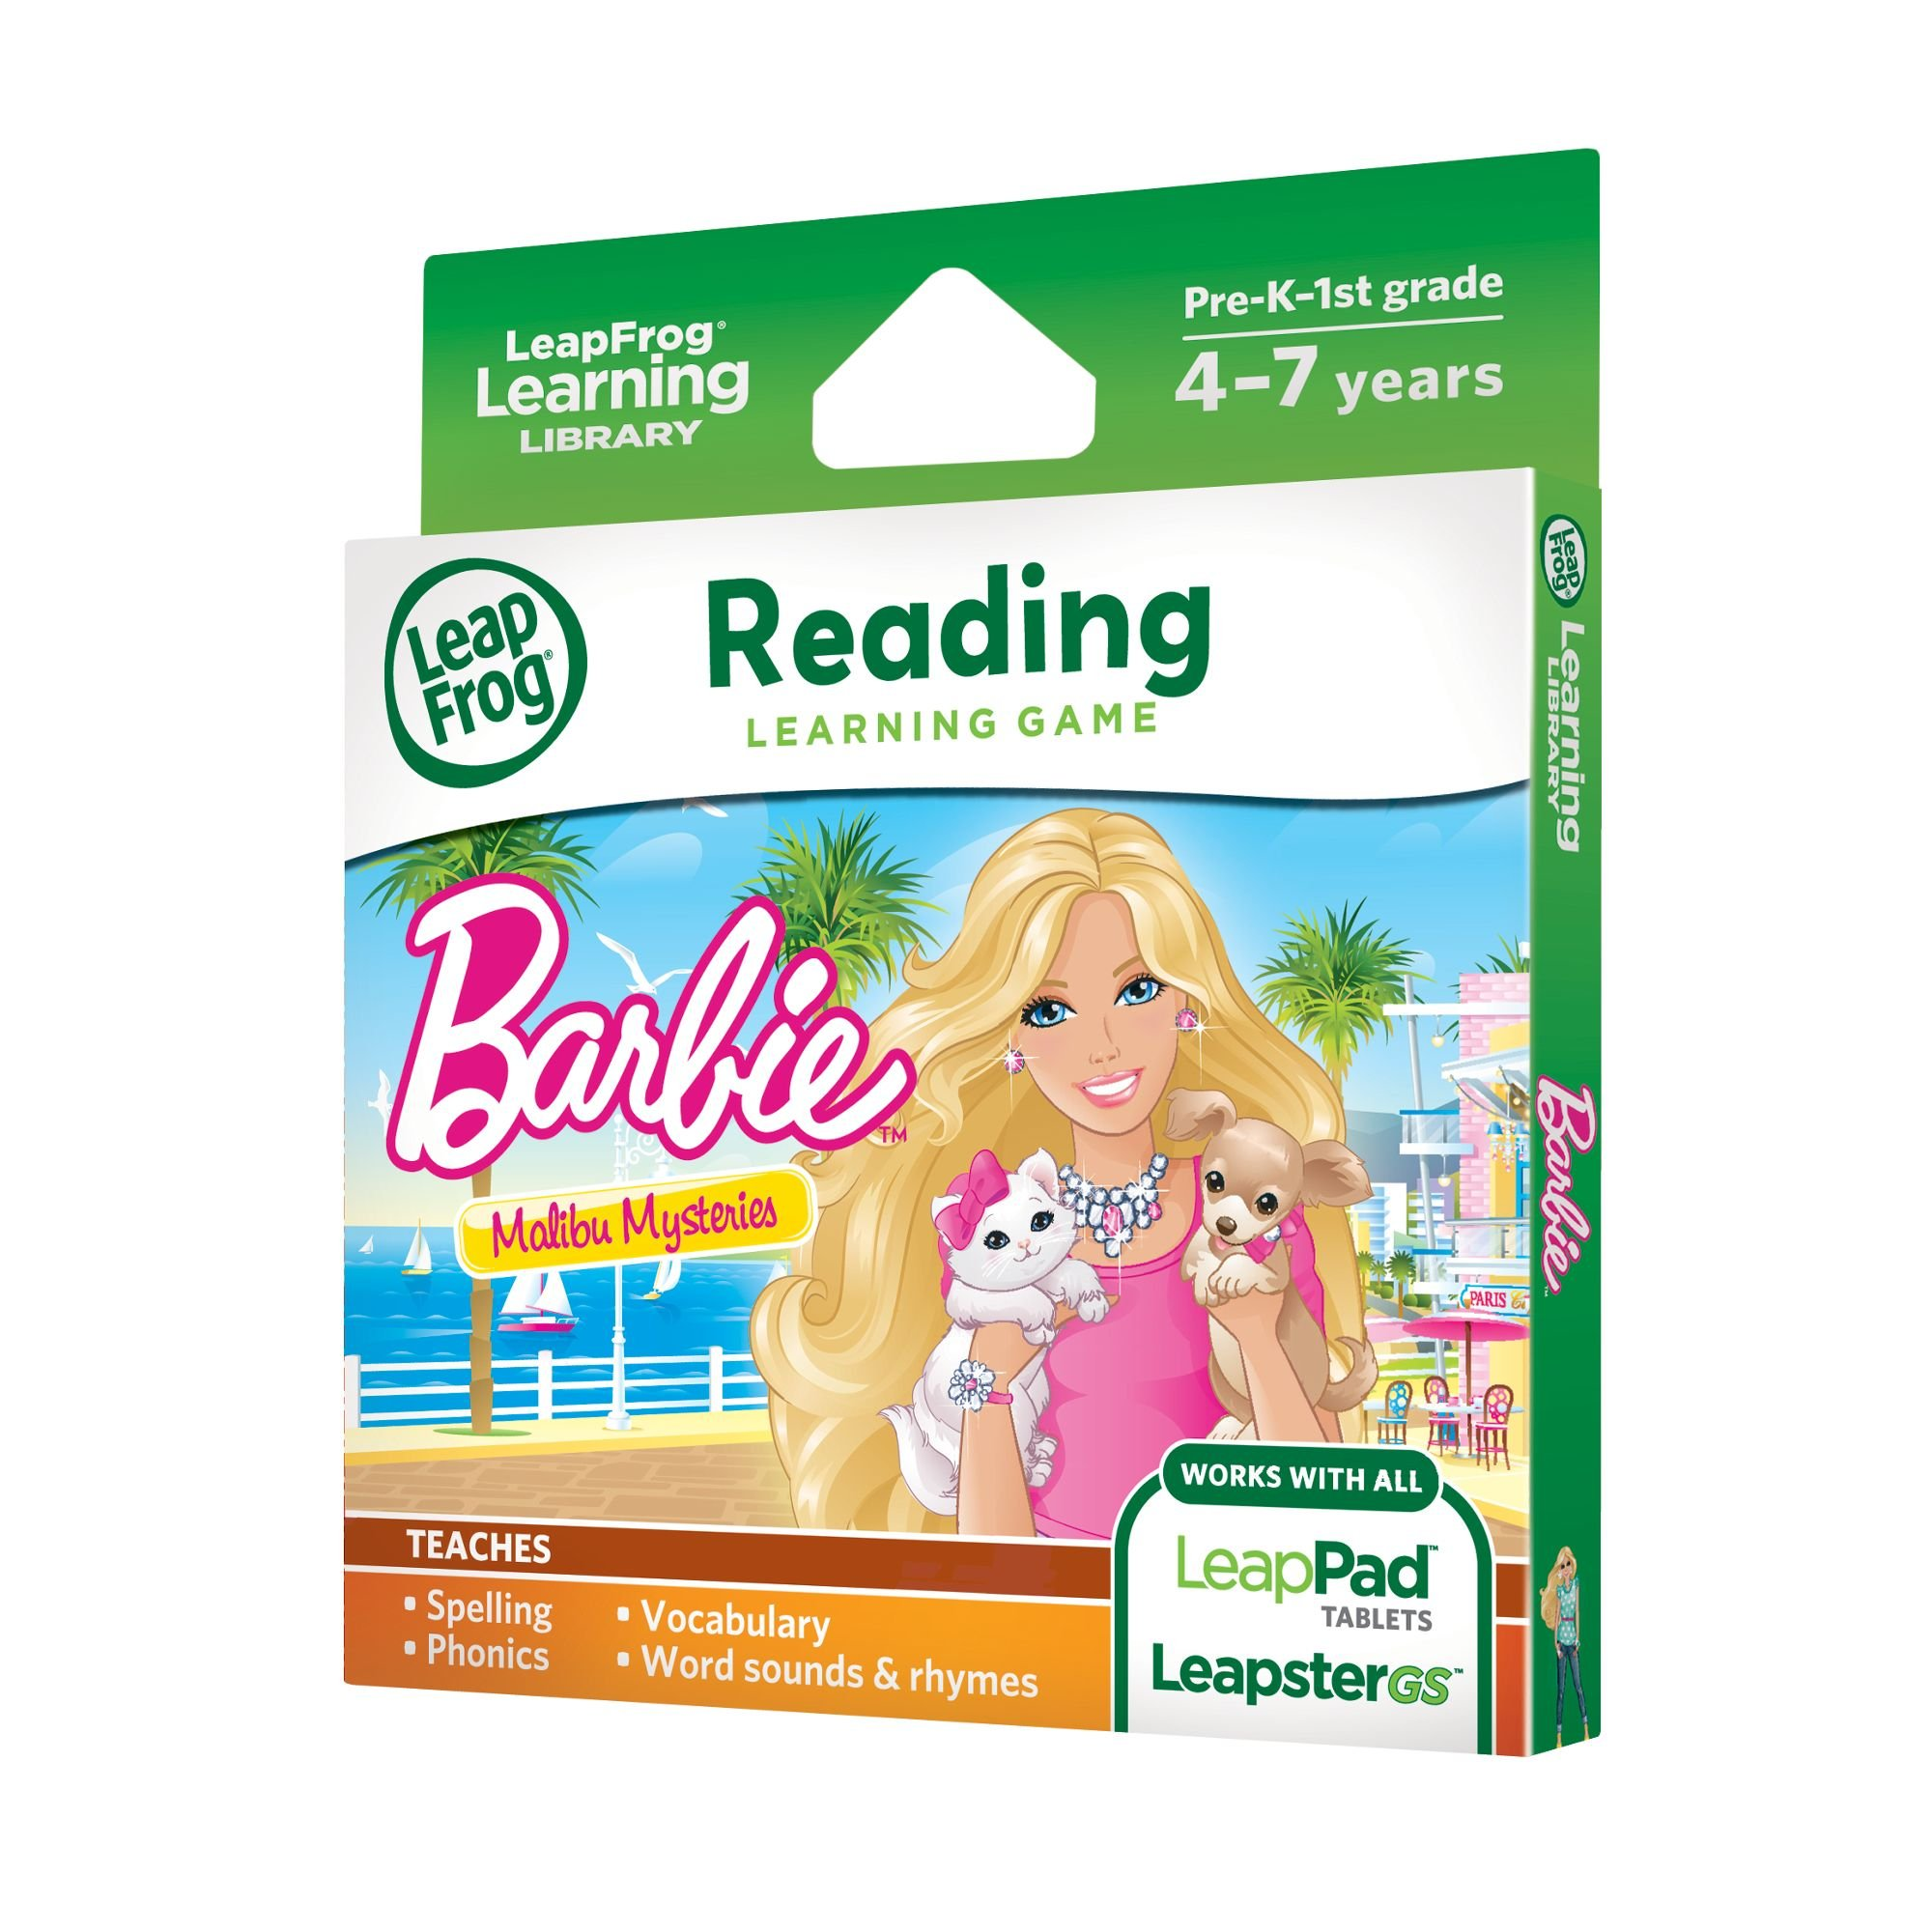 LeapFrog Learning Game: Barbie Malibu Mysteries (for LeapPad Tablets and LeapsterGS) by LeapFrog (Image #2)